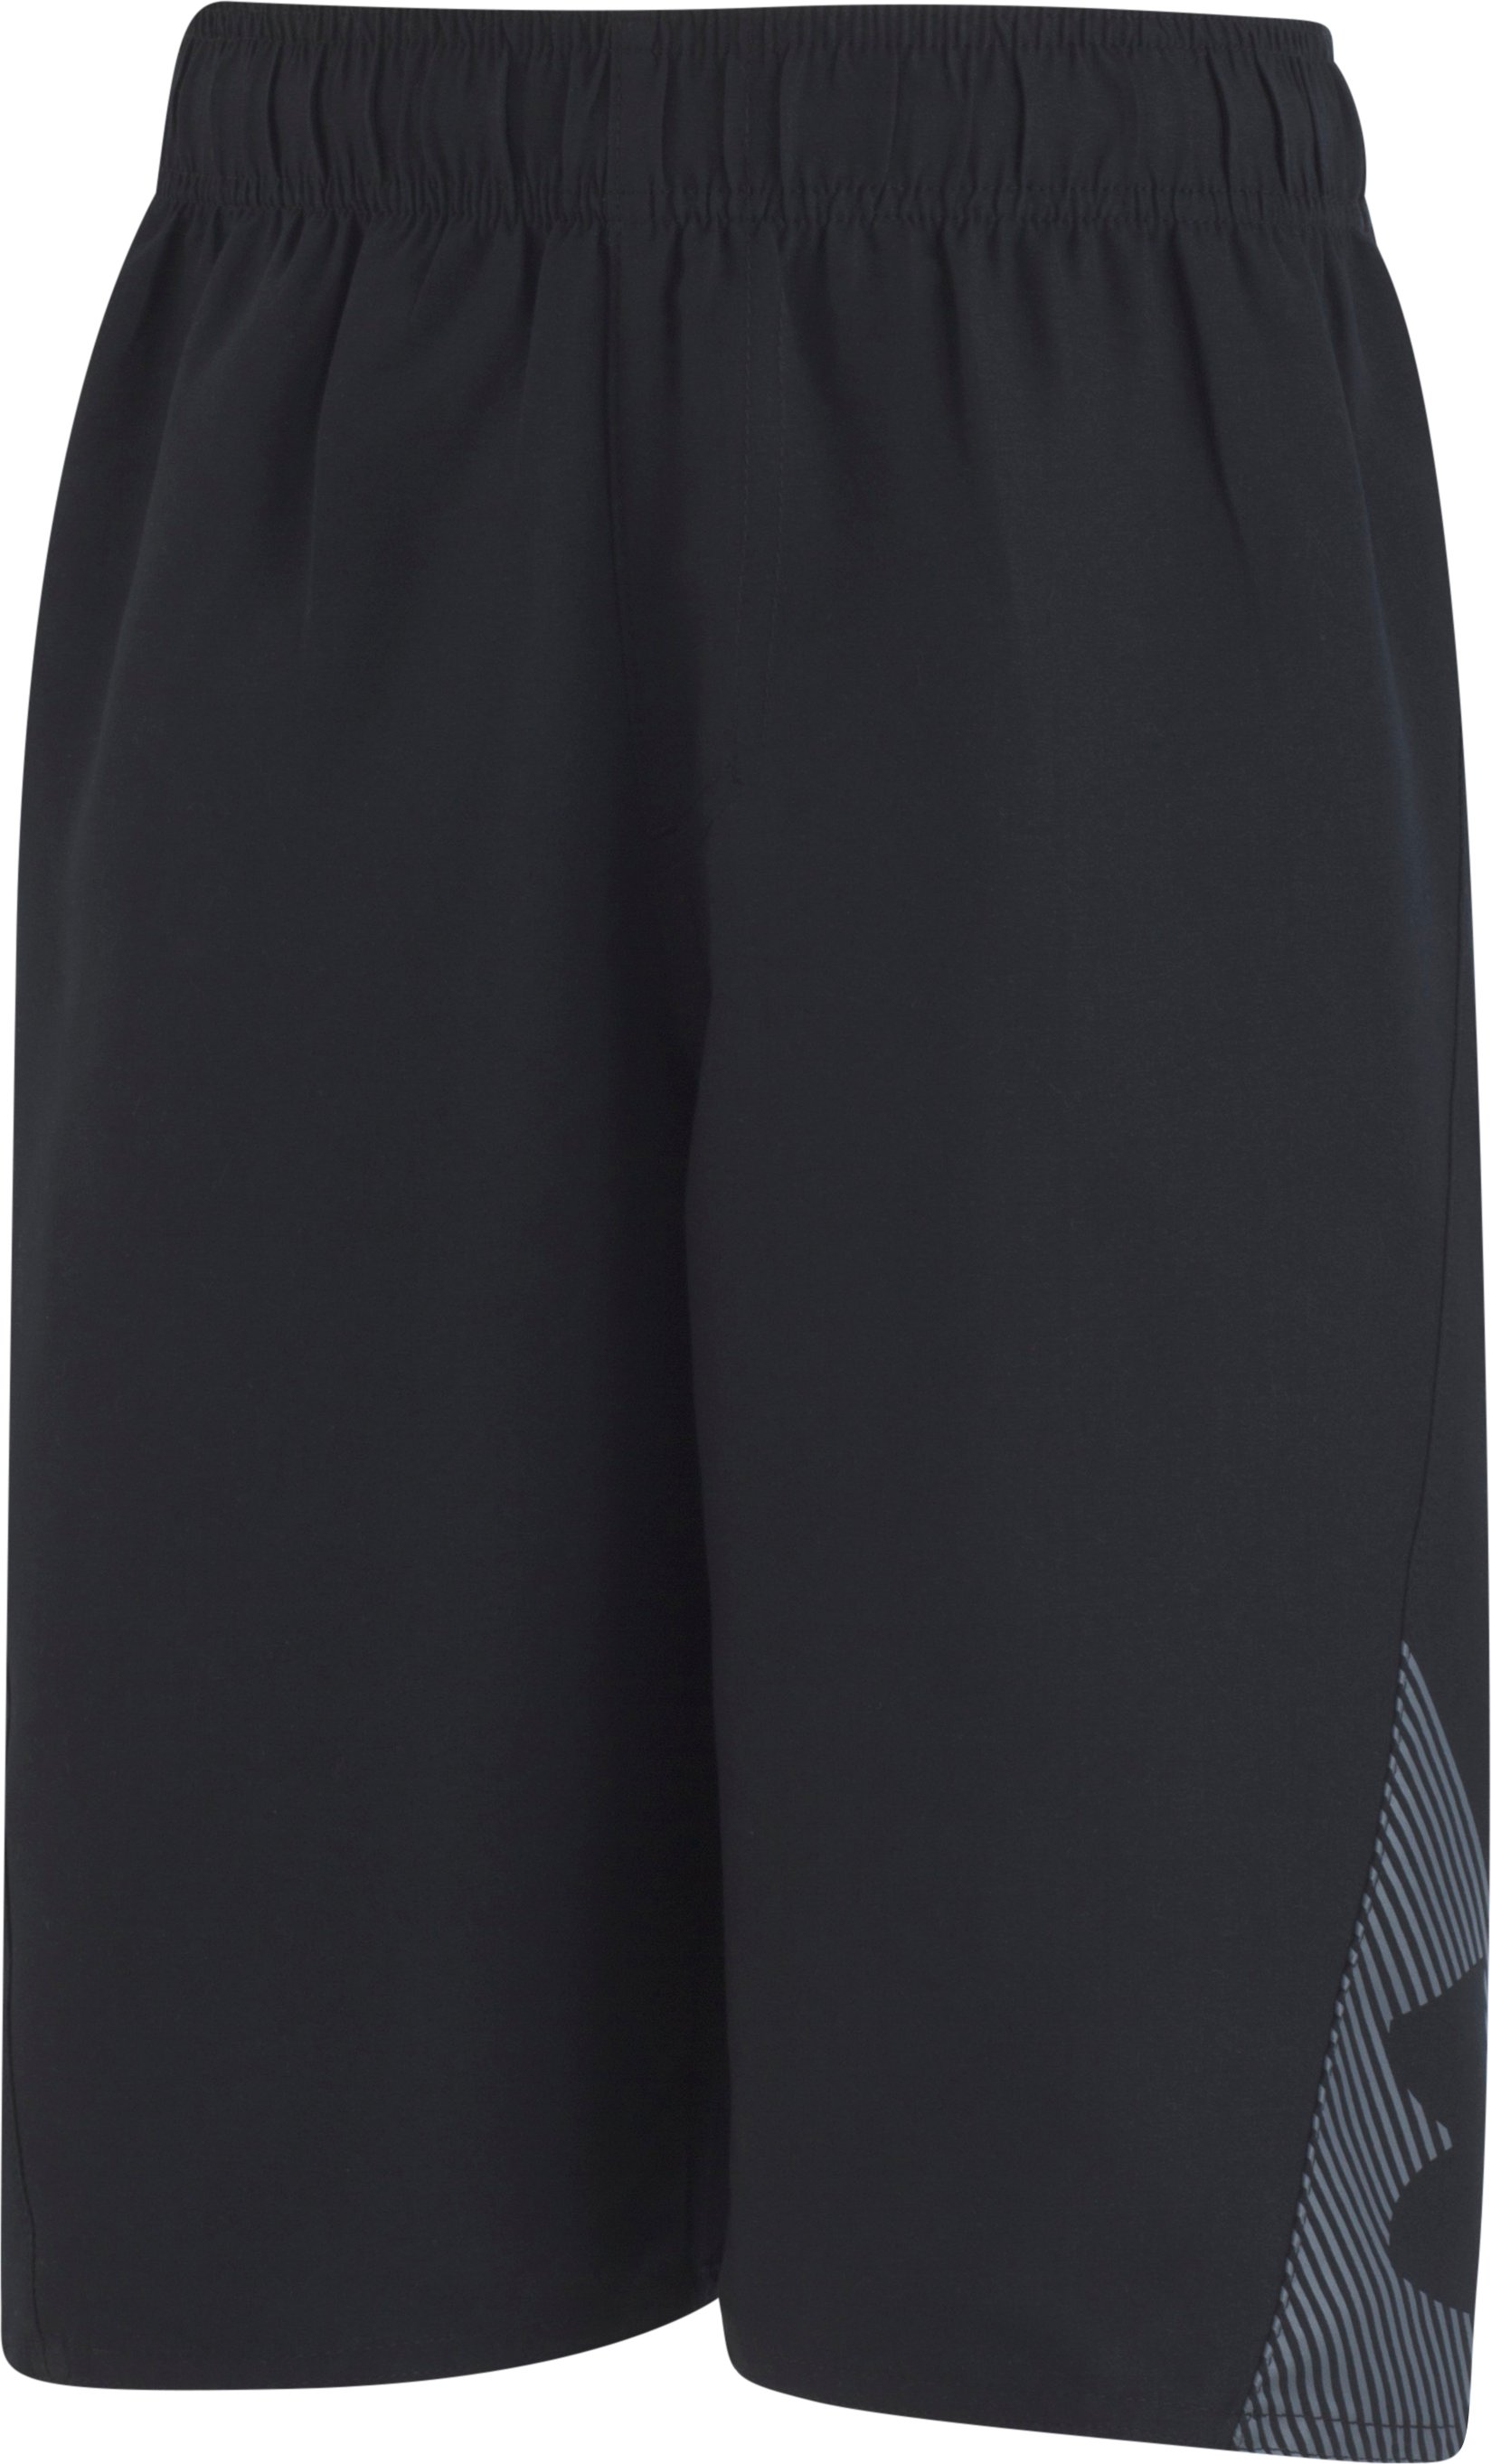 Boys' UA Slash Volley, Black